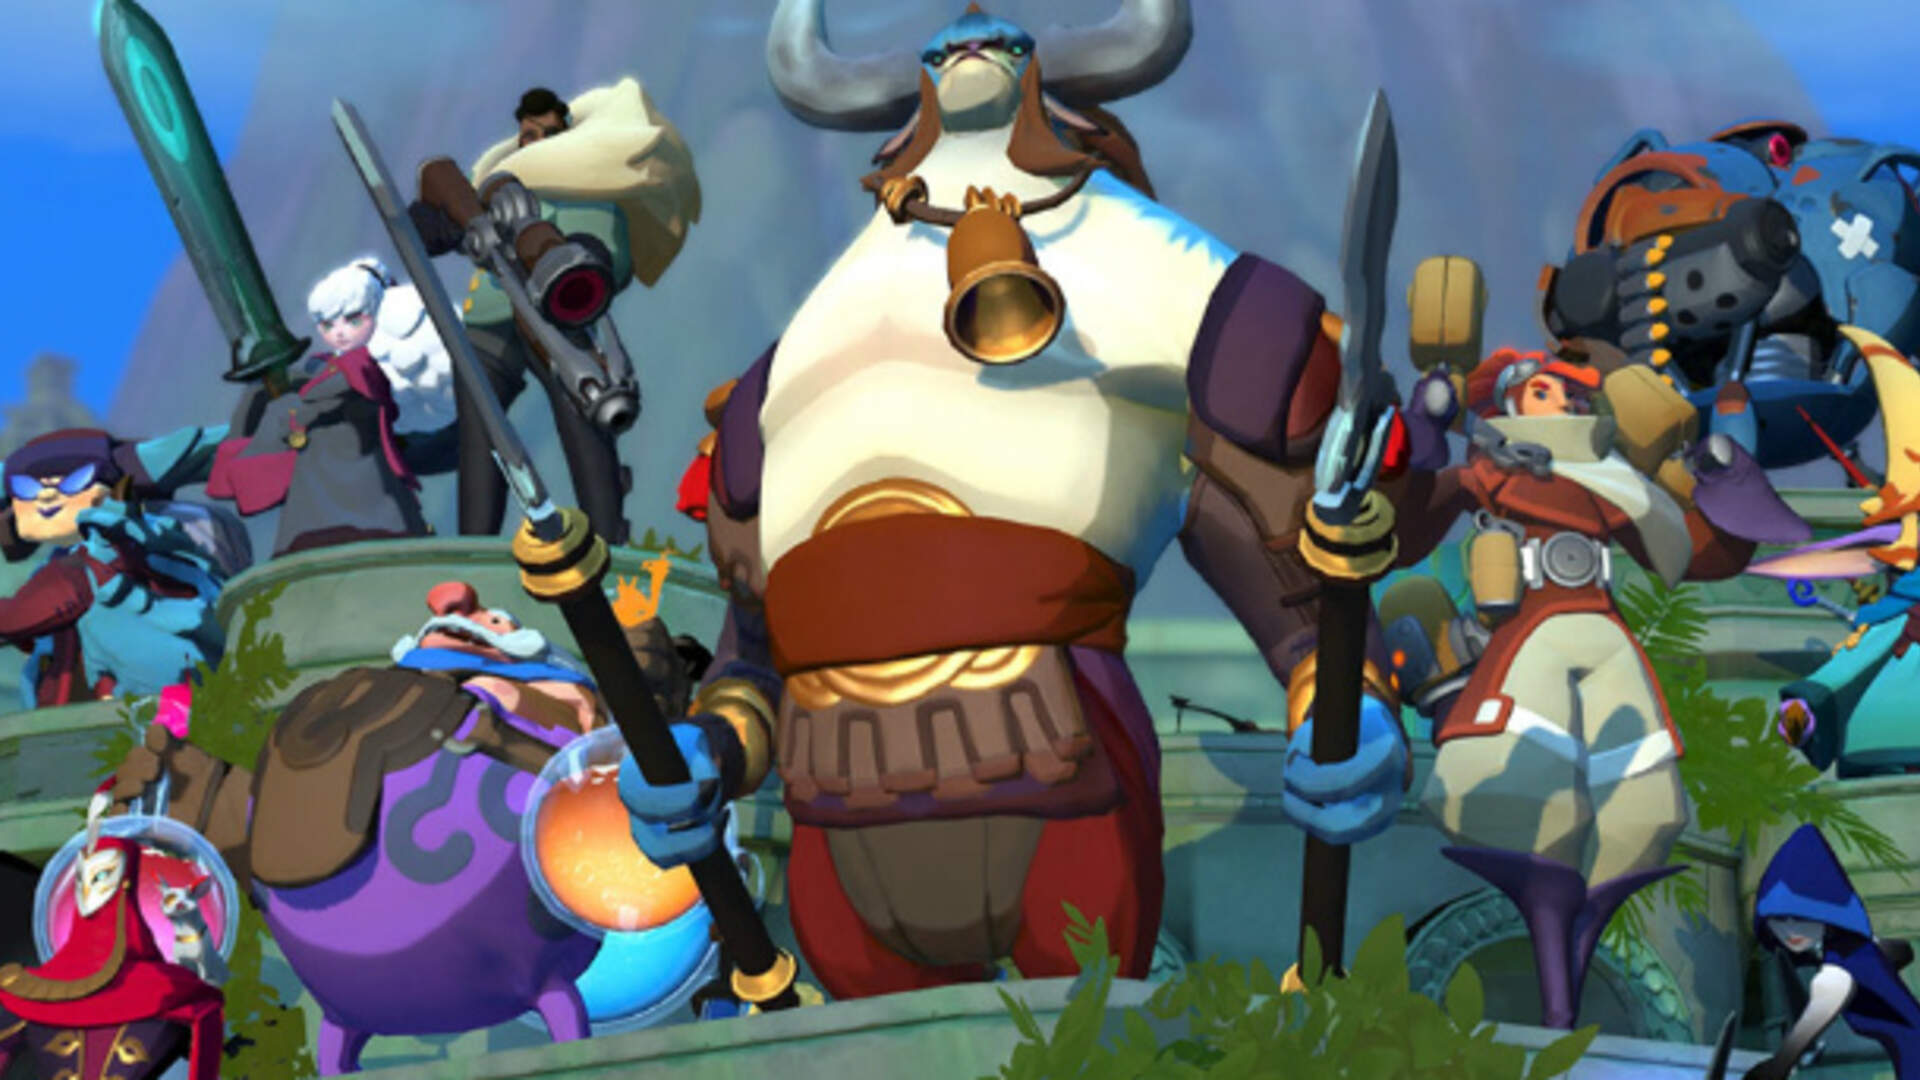 Gigantic Review: Is a Strong and Focused Core Enough?